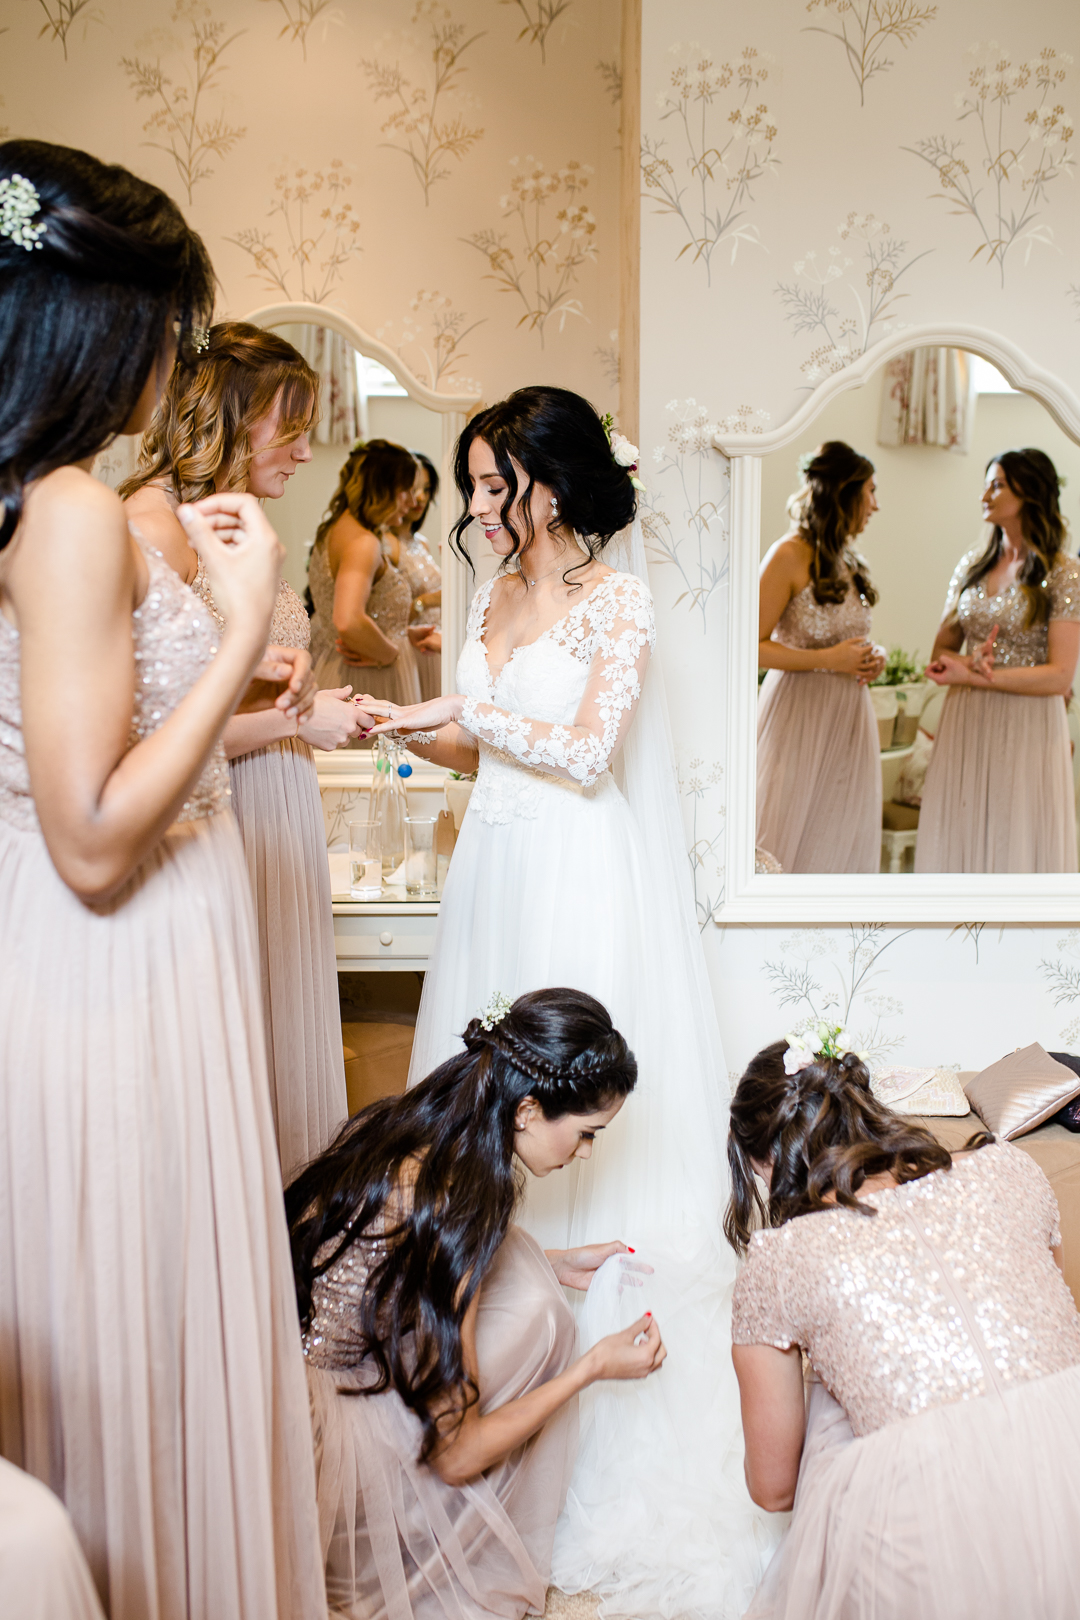 Bride and bridesmaids getting ready for wedding at Clock Barn Hampshire